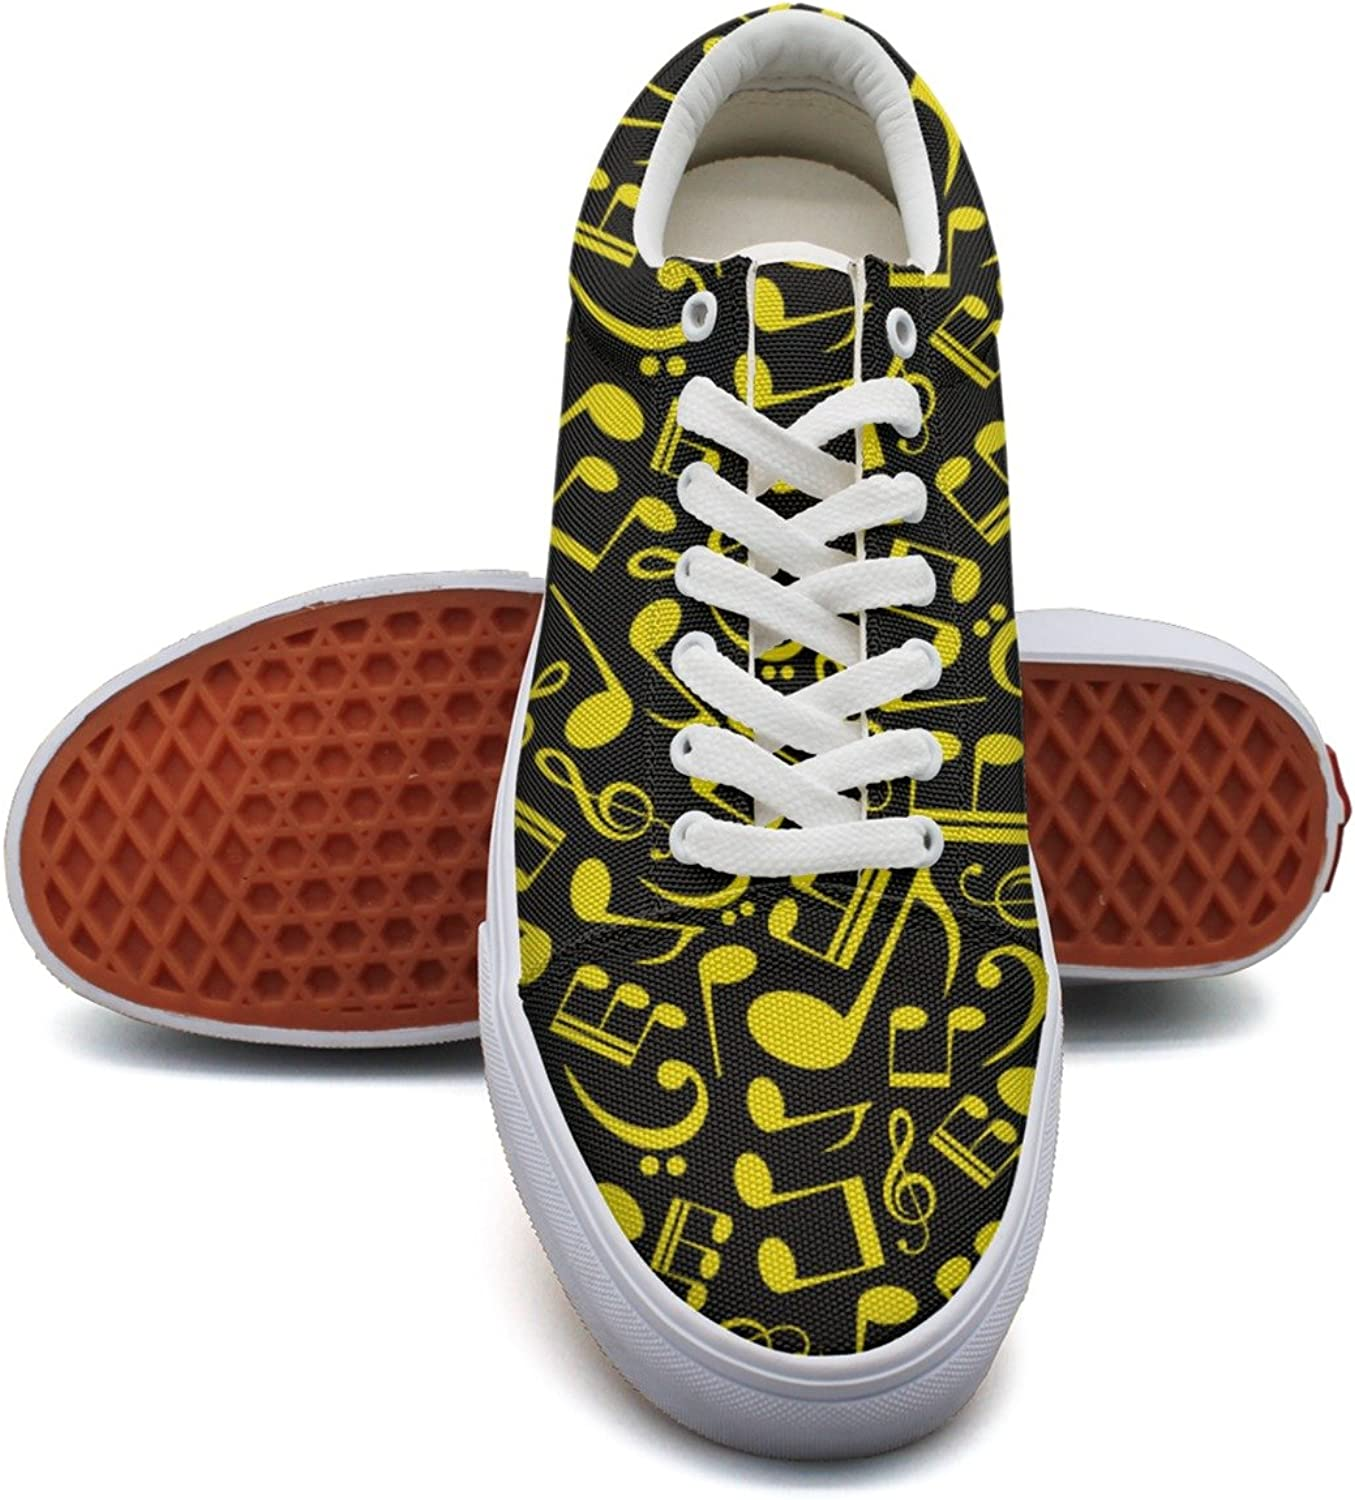 Feenfling Music Note Notation Womens Fashion Canvas Tennis shoes Low Top Vintage Sneakers shoes for Women's